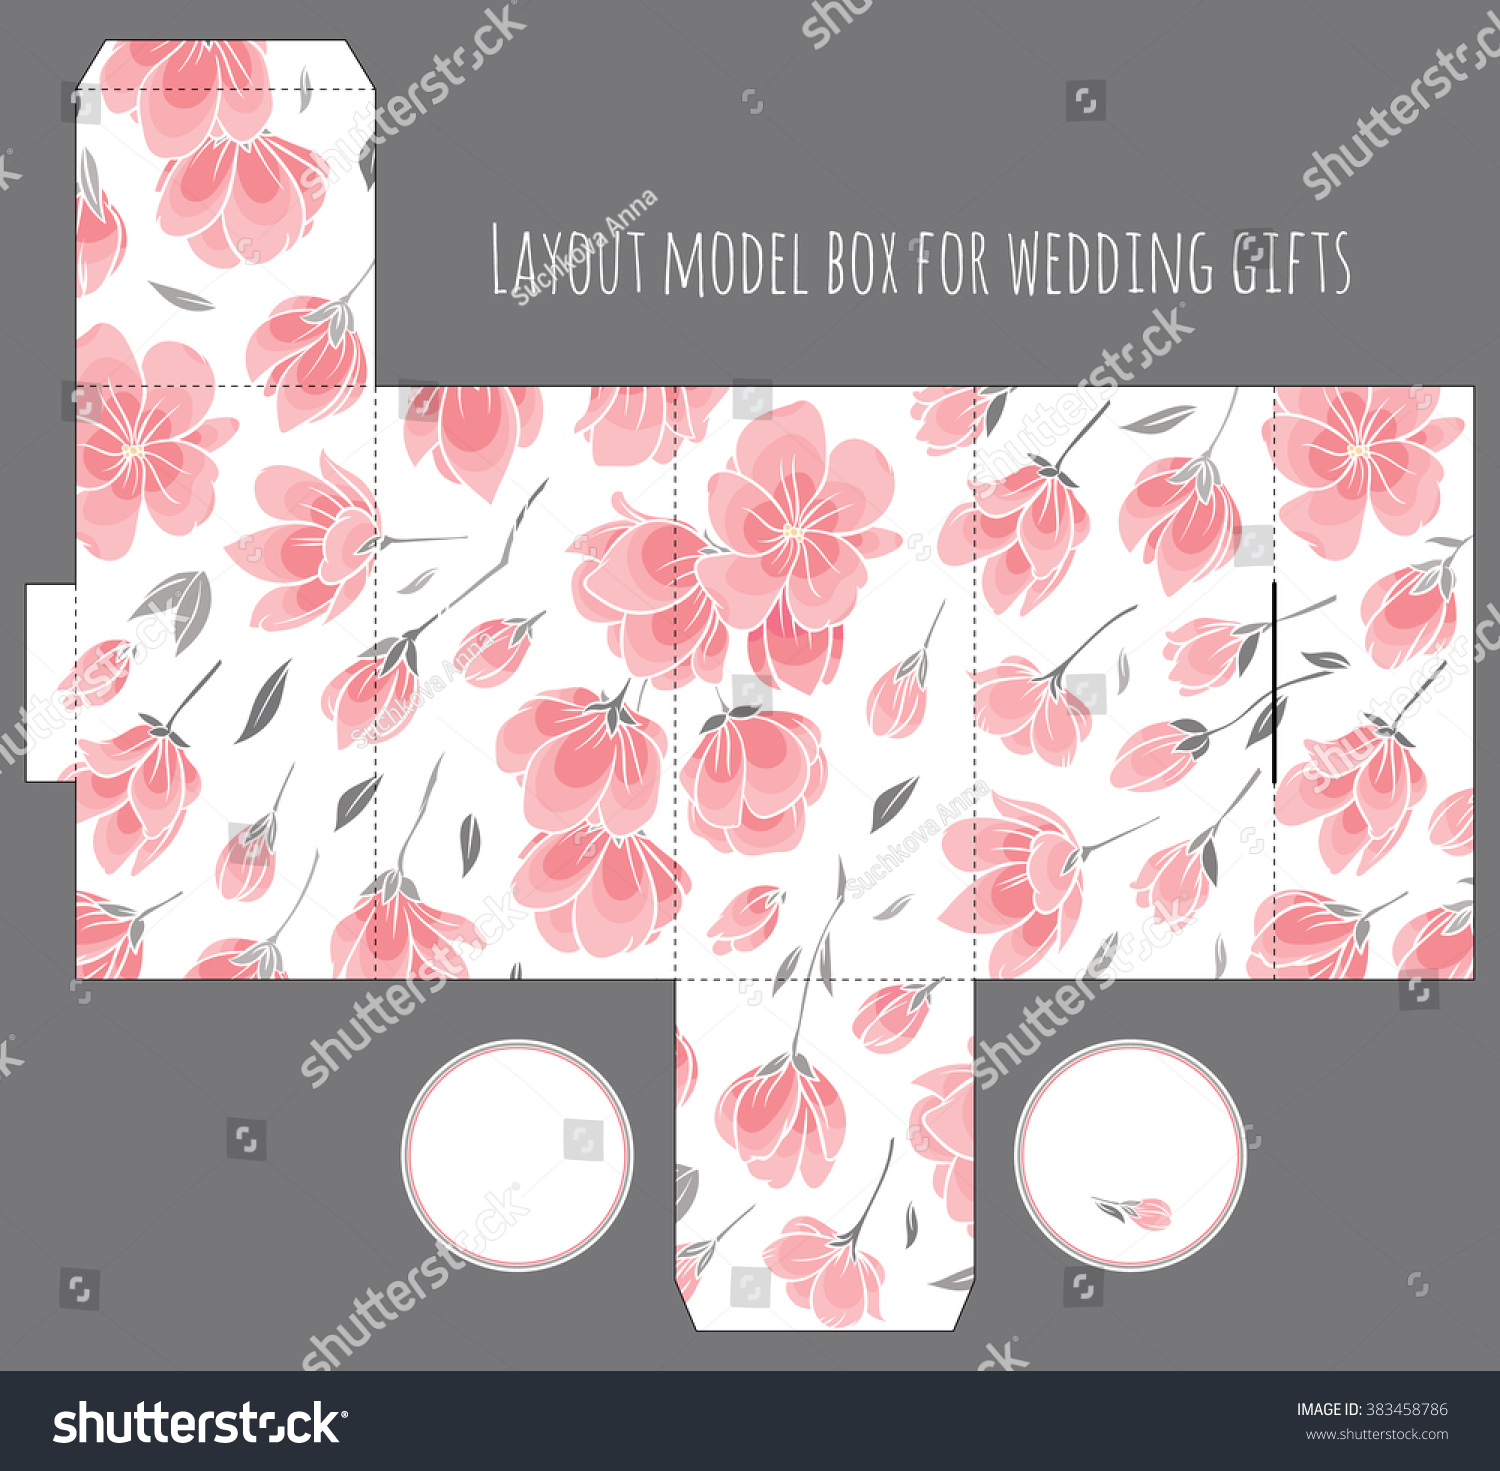 Gift Wedding Favor Box Template Nature Stock Vector (Royalty Free ...